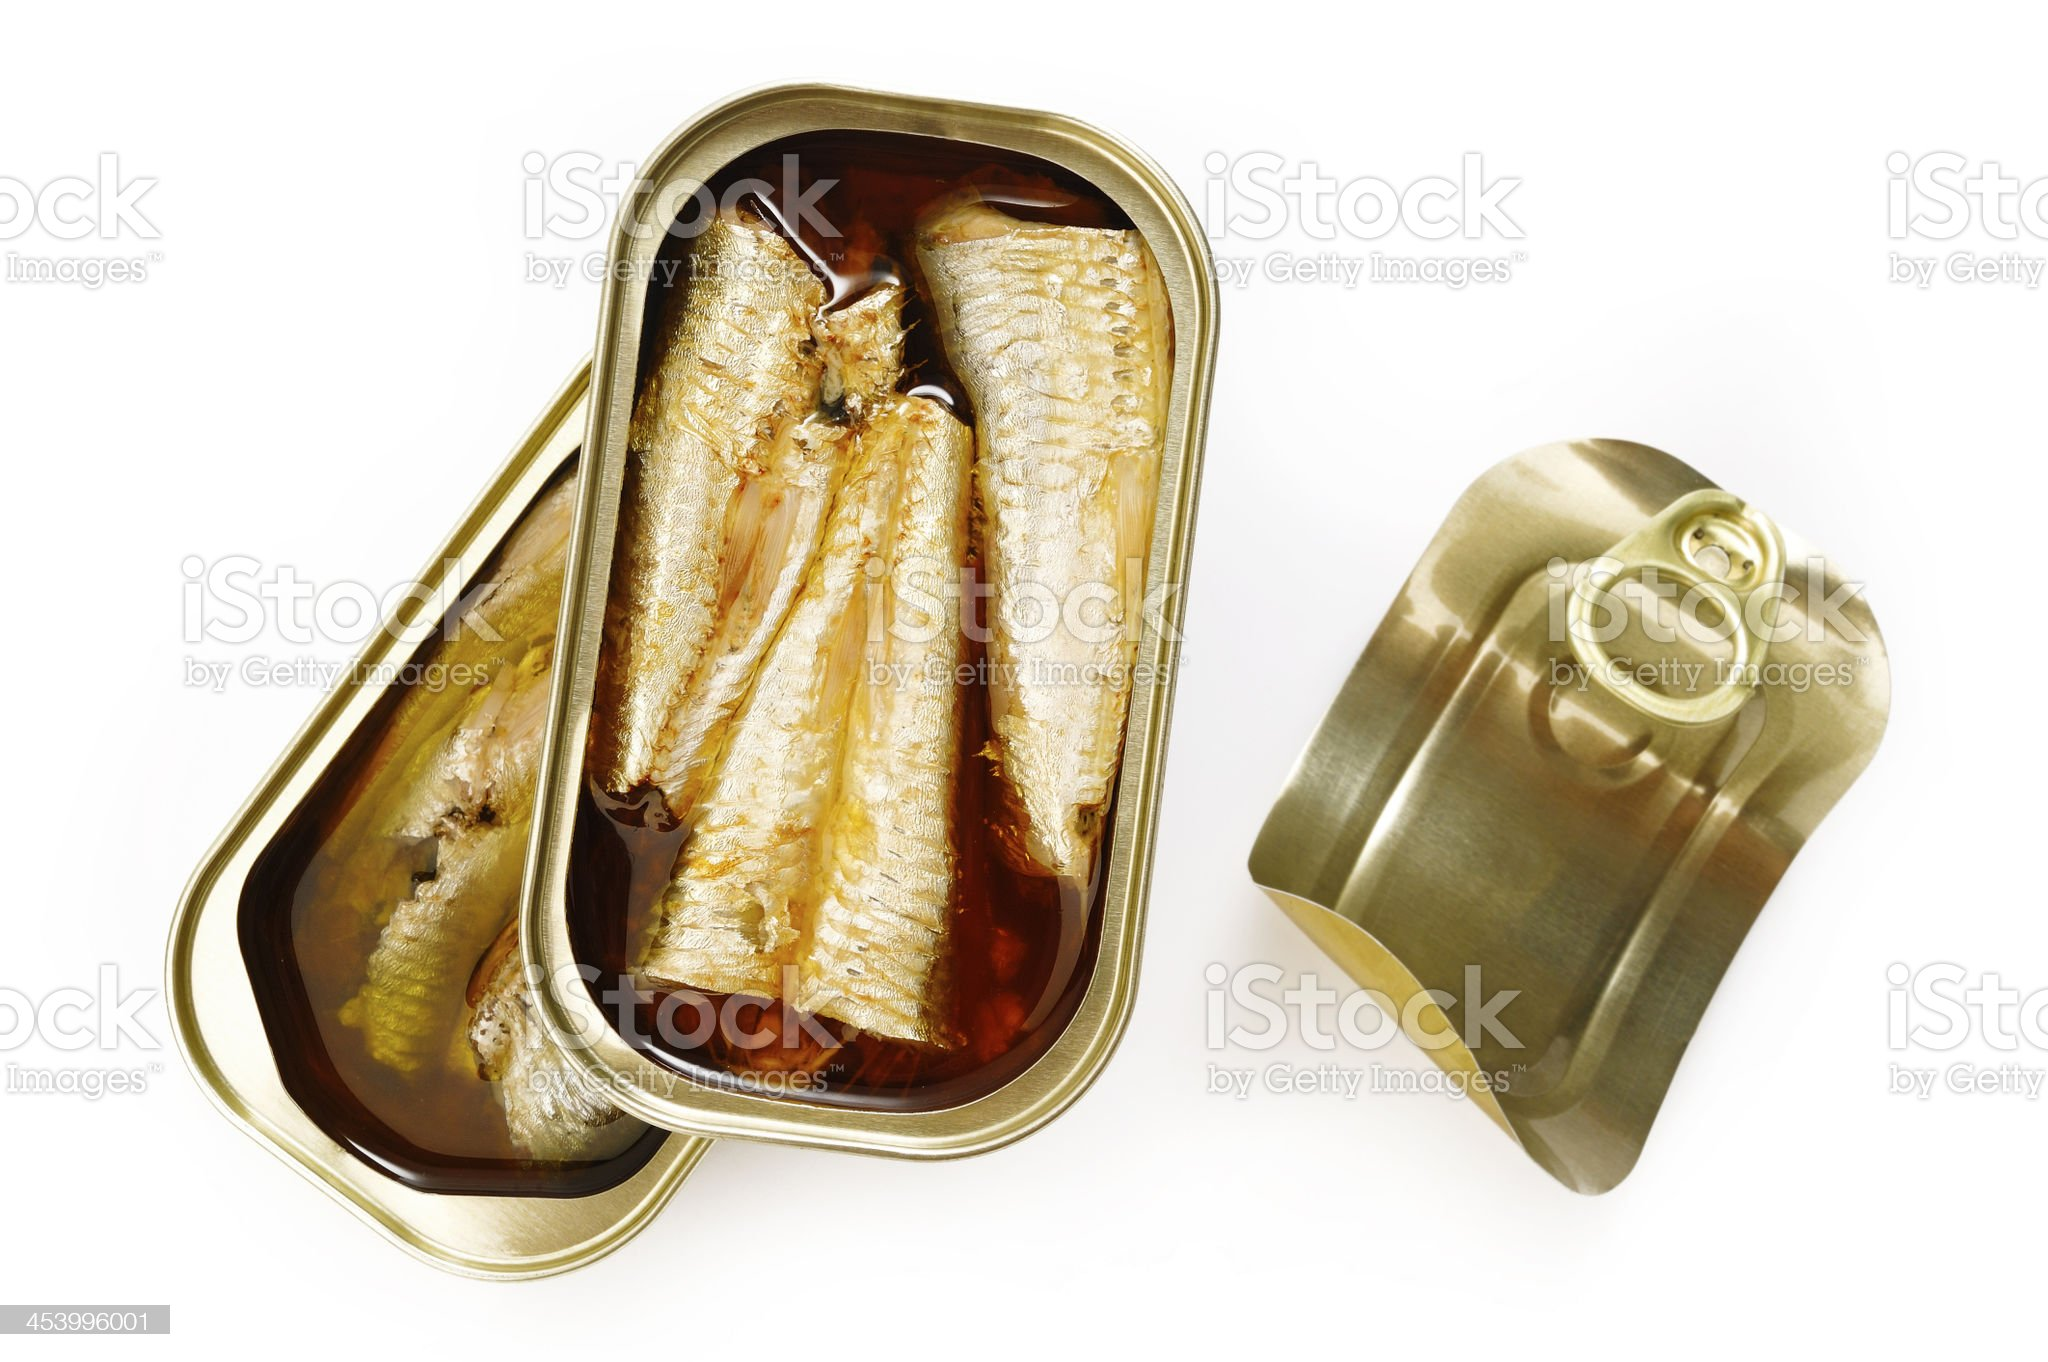 sardines in olive oil on white background royalty-free stock photo